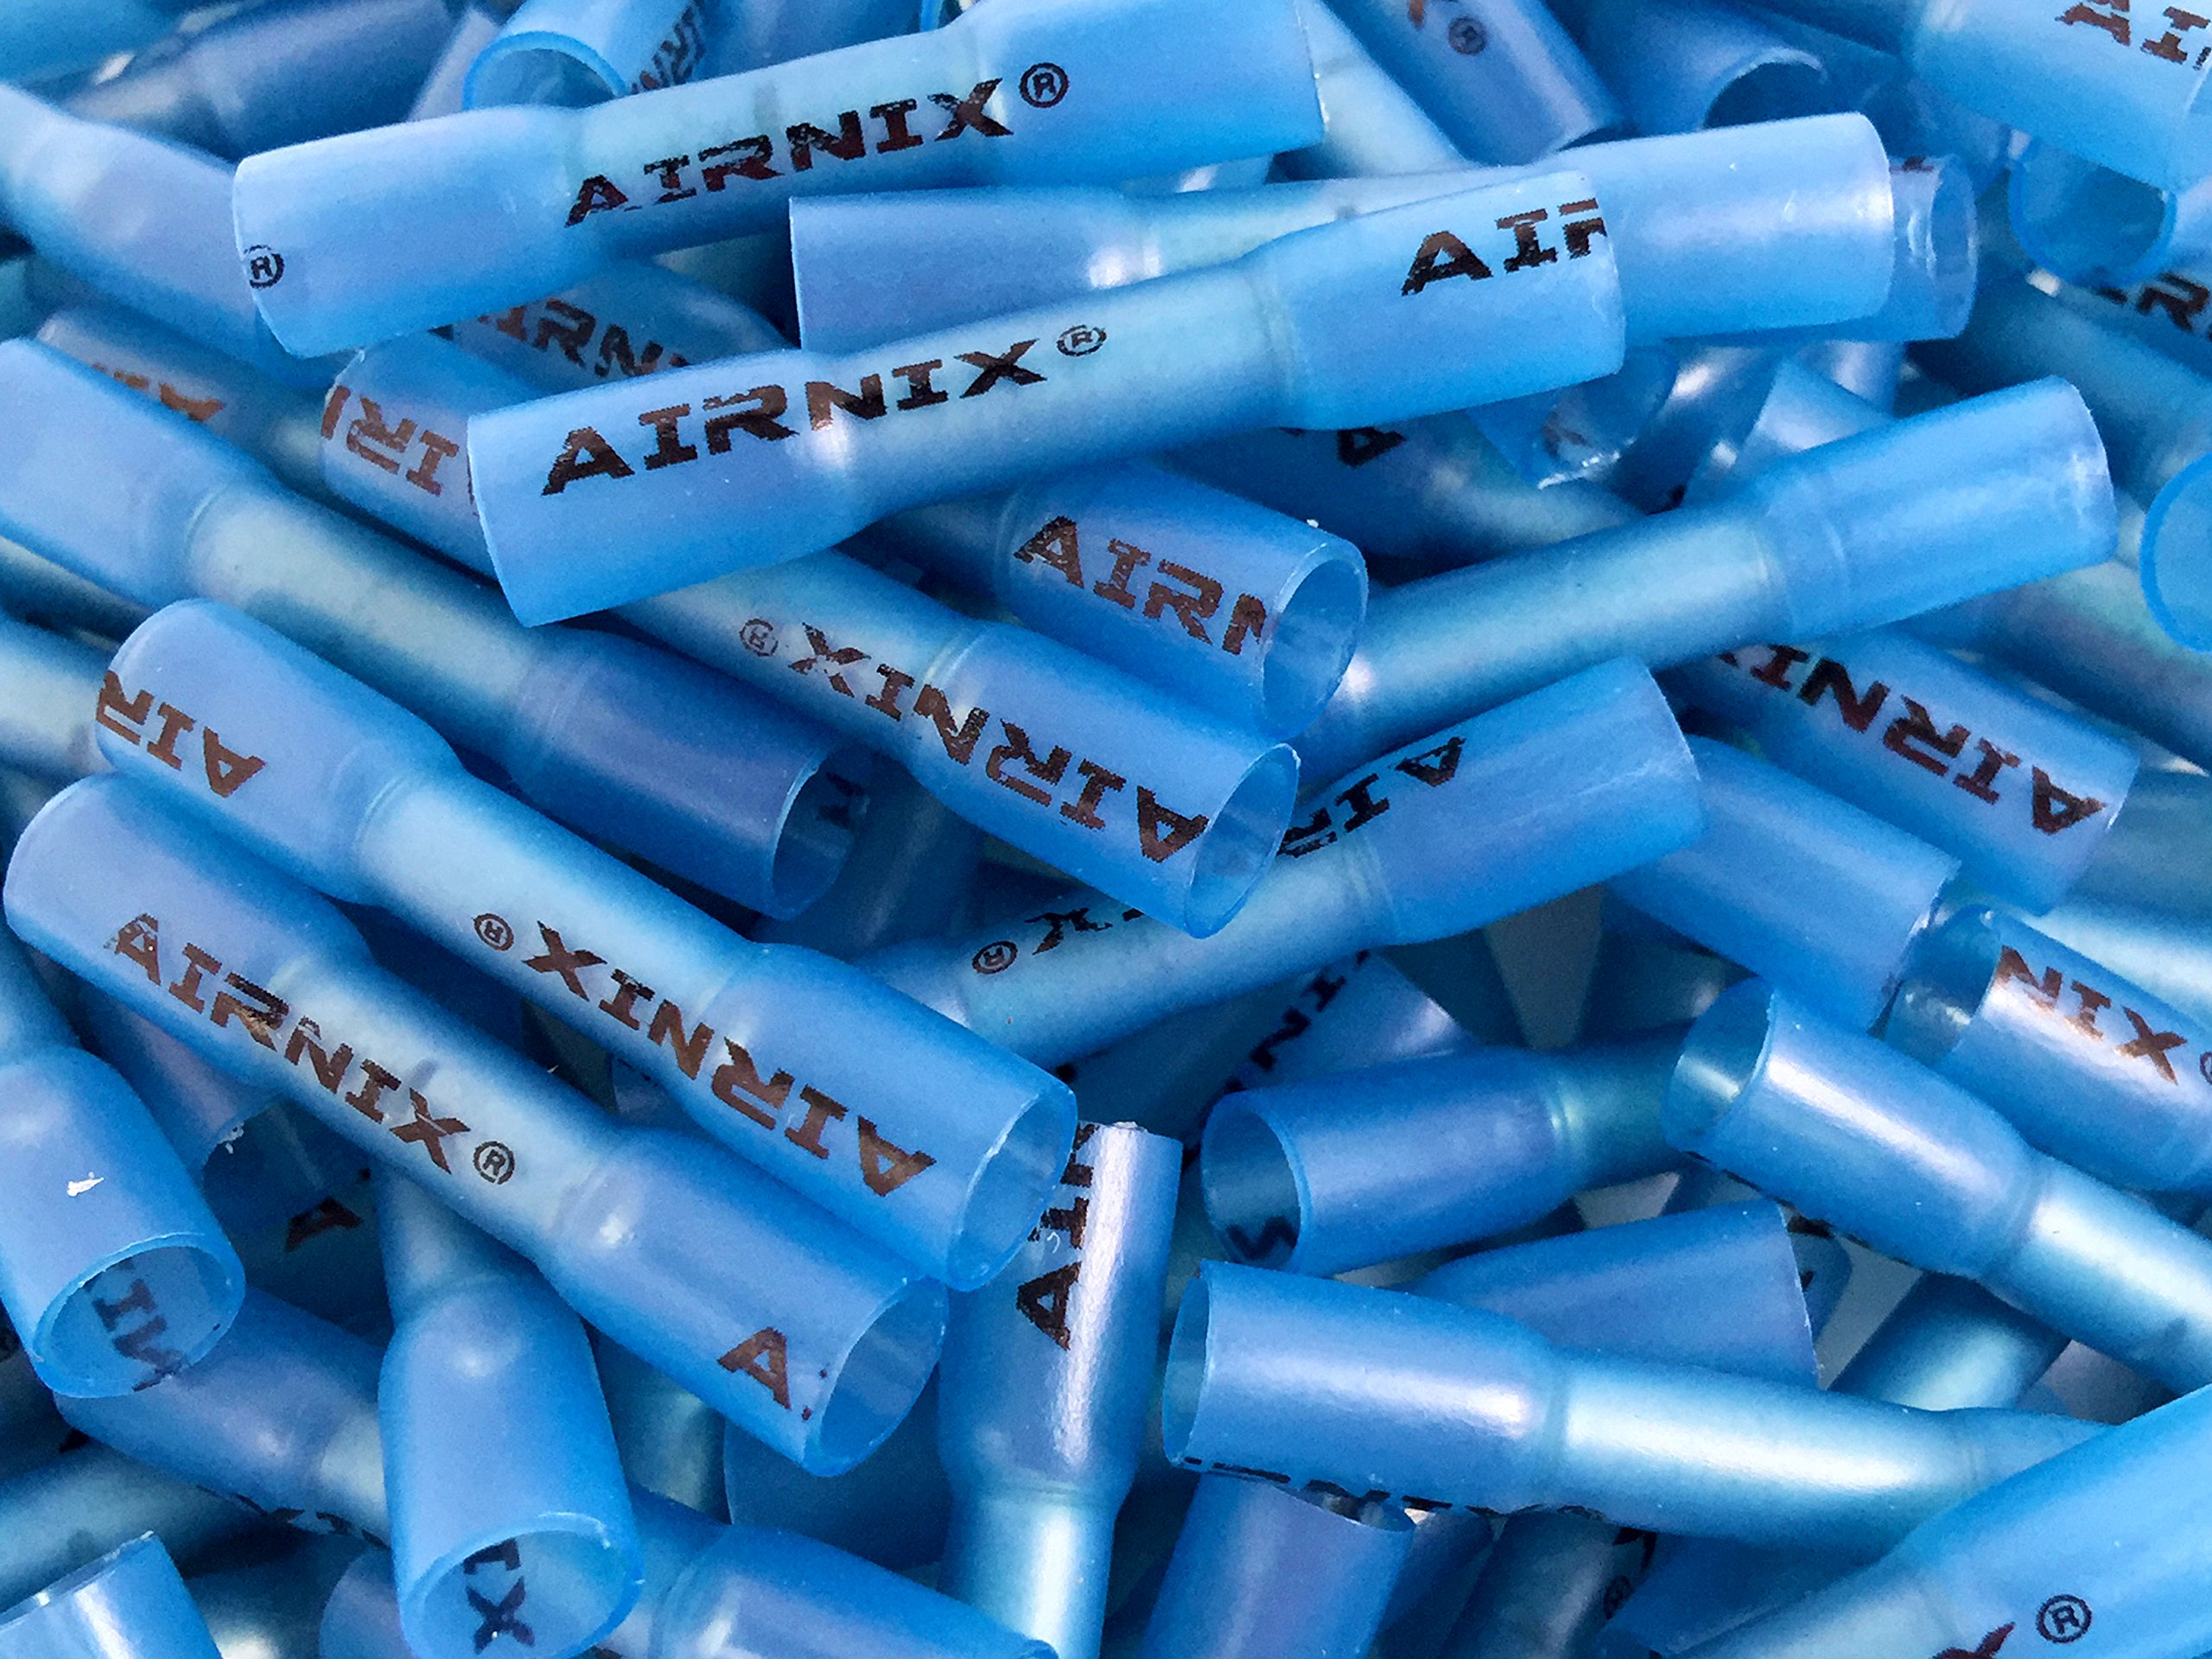 1000 Piece Blue Heat Shrink Insulated Butt Connectors Butt Splice Terminals, Heat Shrinkable, Water and Vibration Proof, Corrosion Free, Gauge 16-14 AWG by AIRNIX